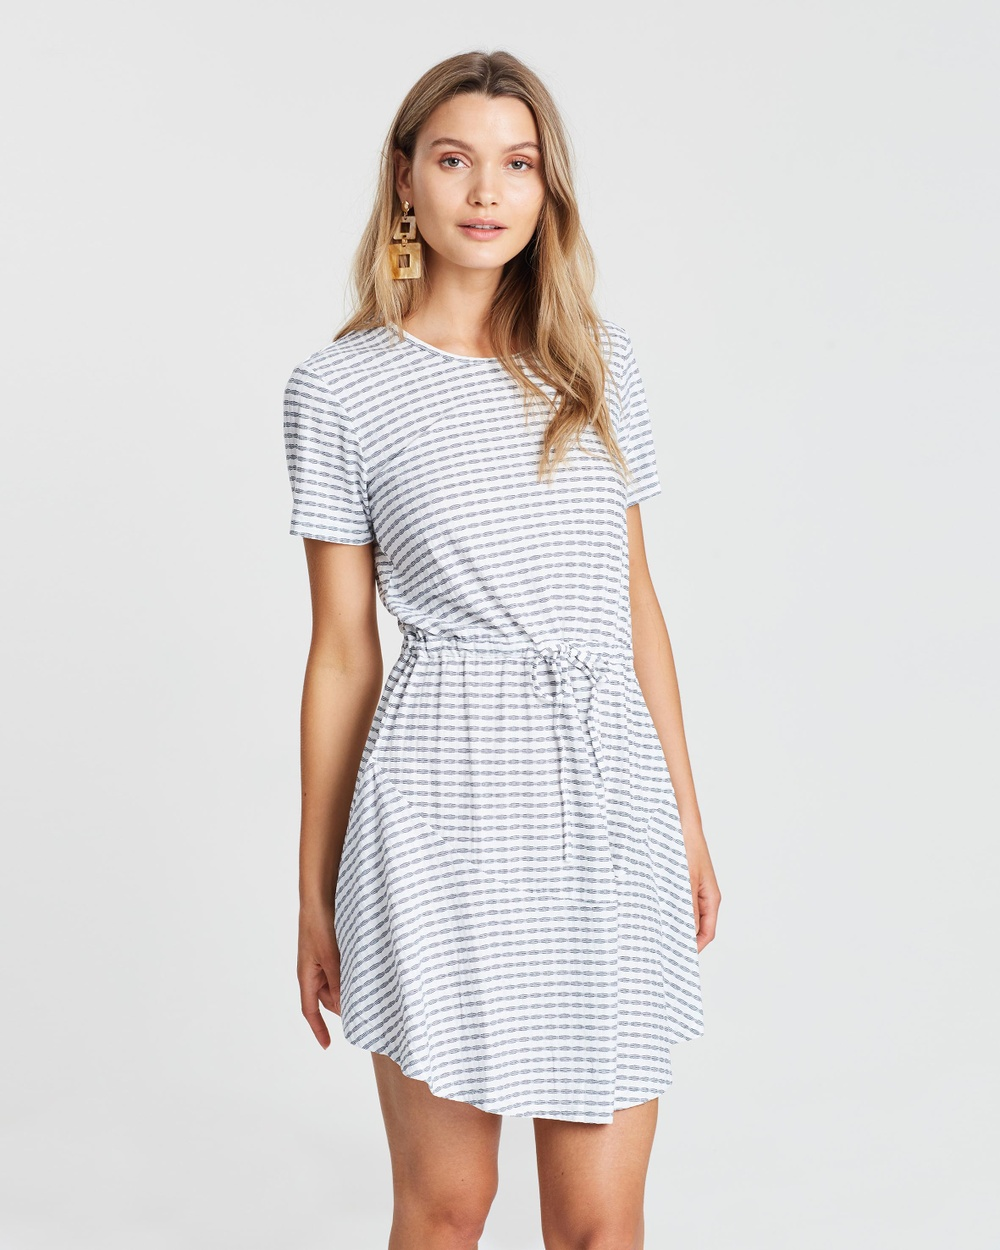 Photo of MINKPINK White & Navy Lena Skater Dress - buy MINKPINK dresses on sale online